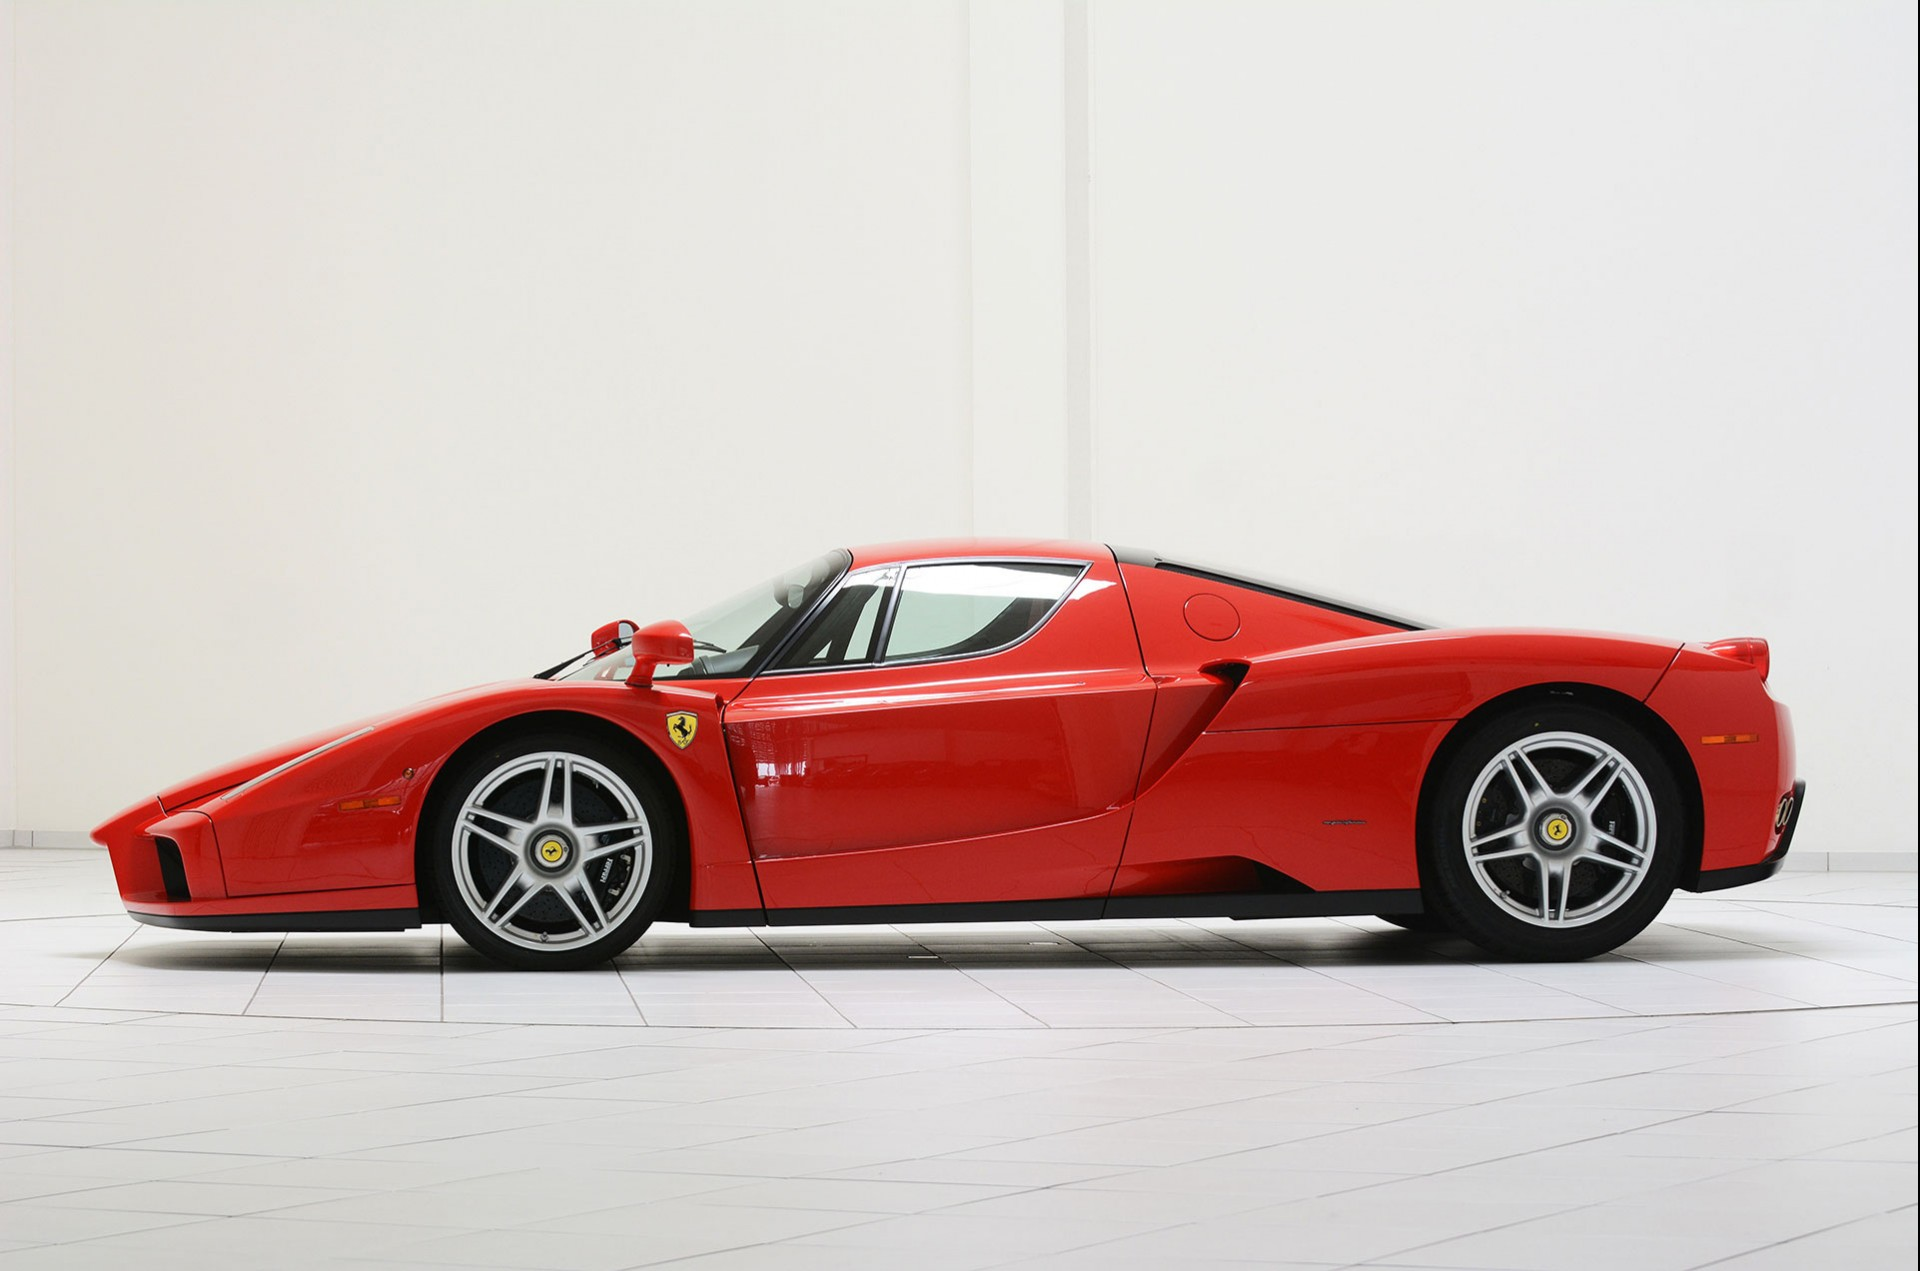 Ferrari clipart side view Image Free Clker online Images